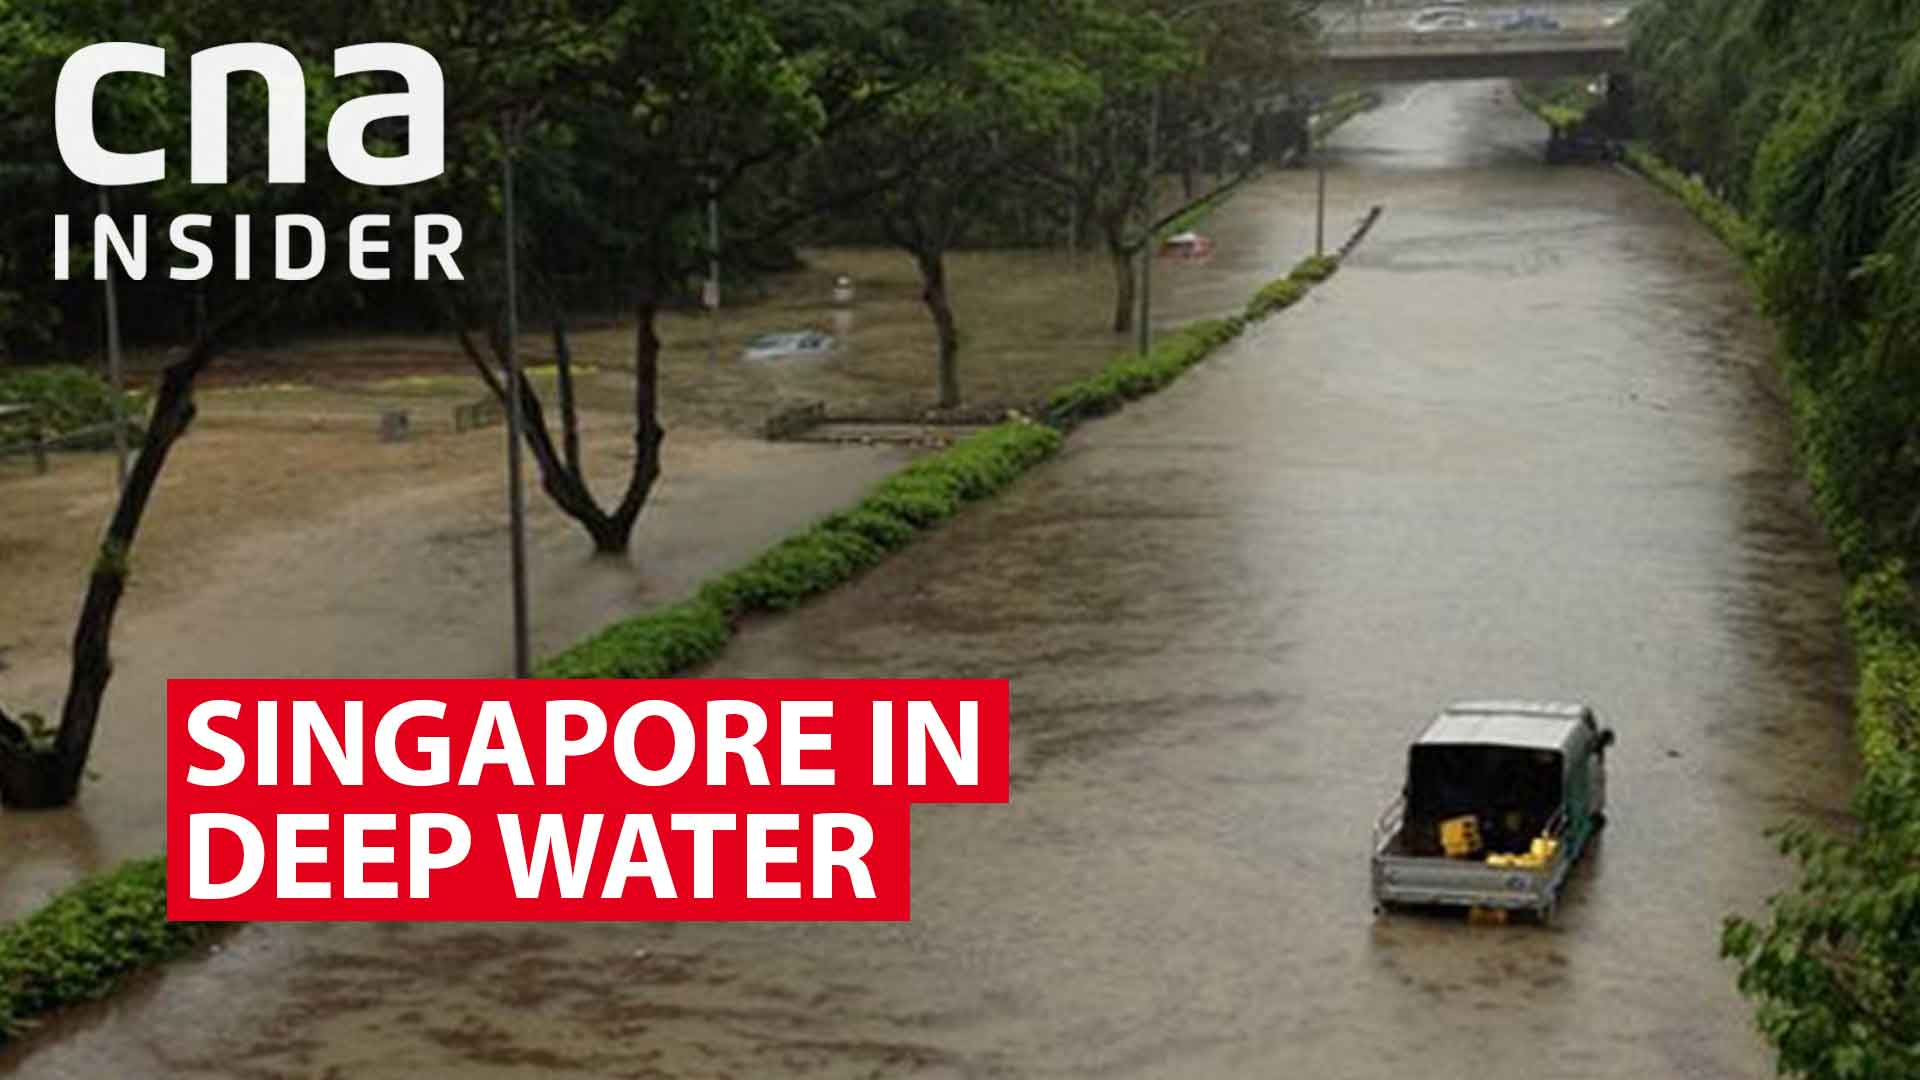 How badly flooded could Singapore get?